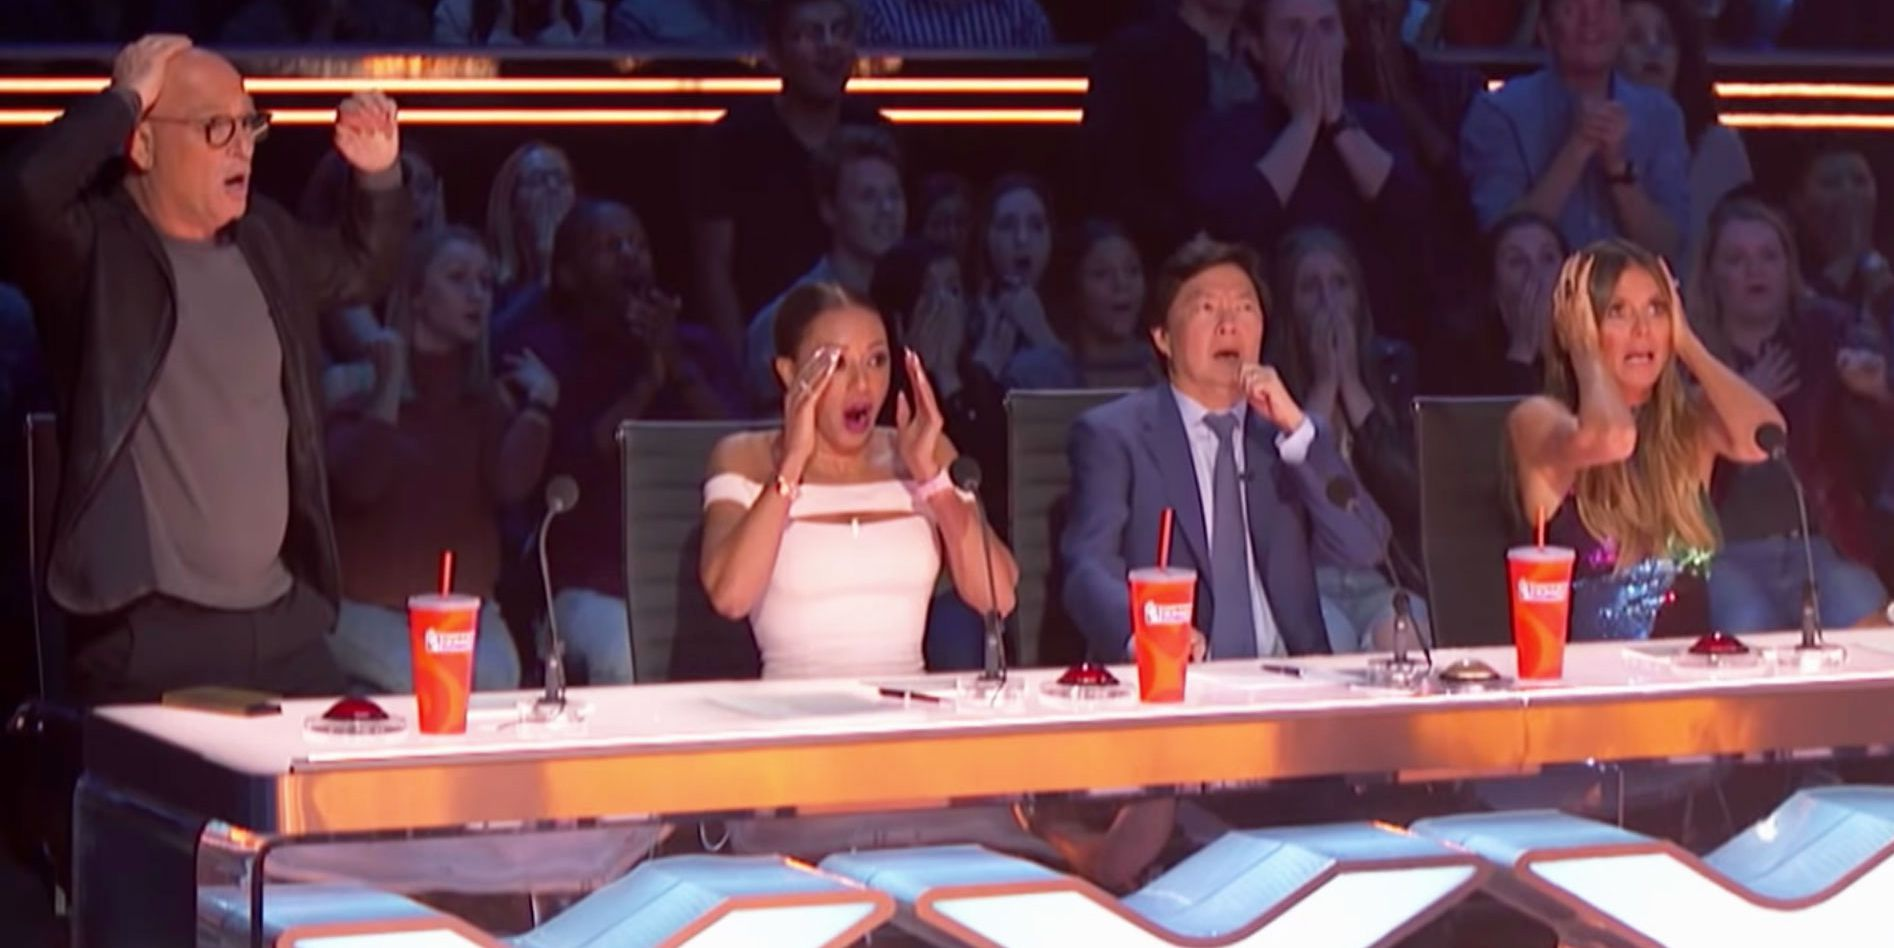 Woman From 'America's Got Talent' Trapeze Act Plunges to the Ground in Front of Audience